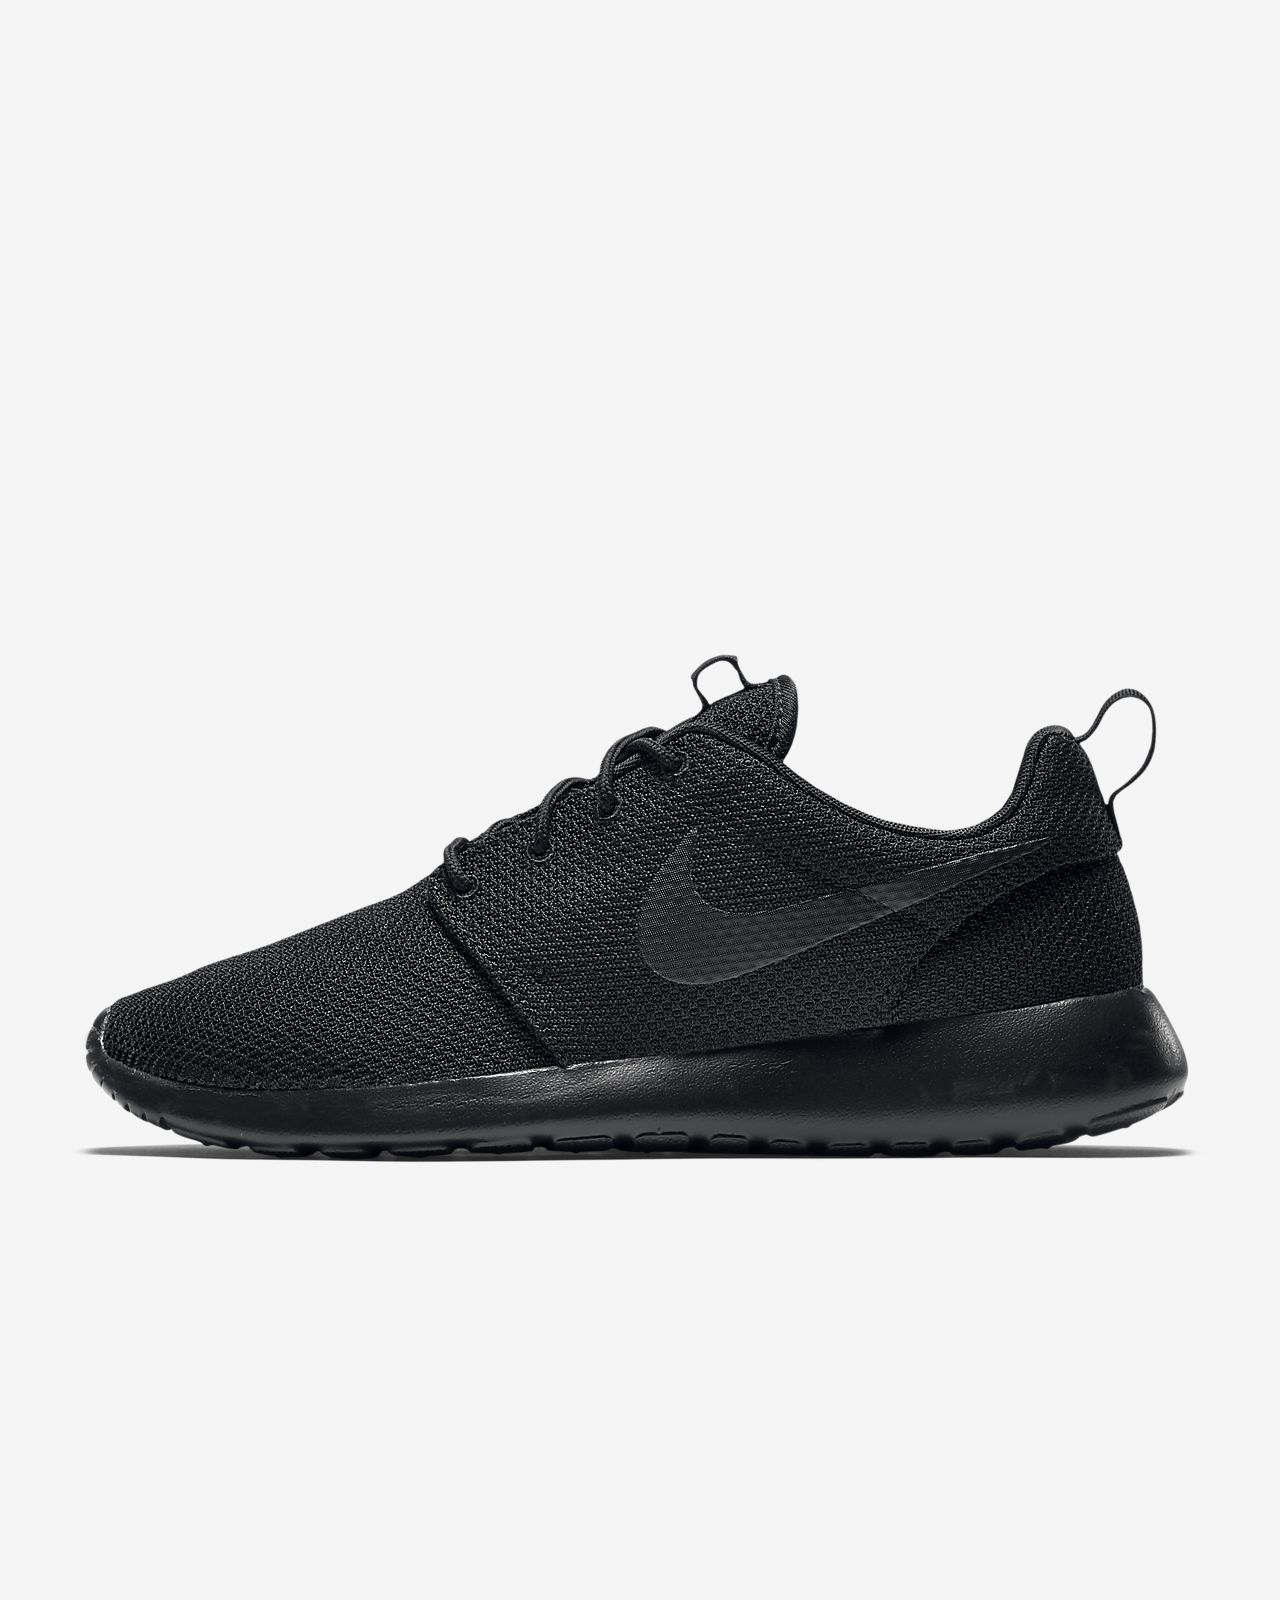 Nike Roshe One Men's Shoe